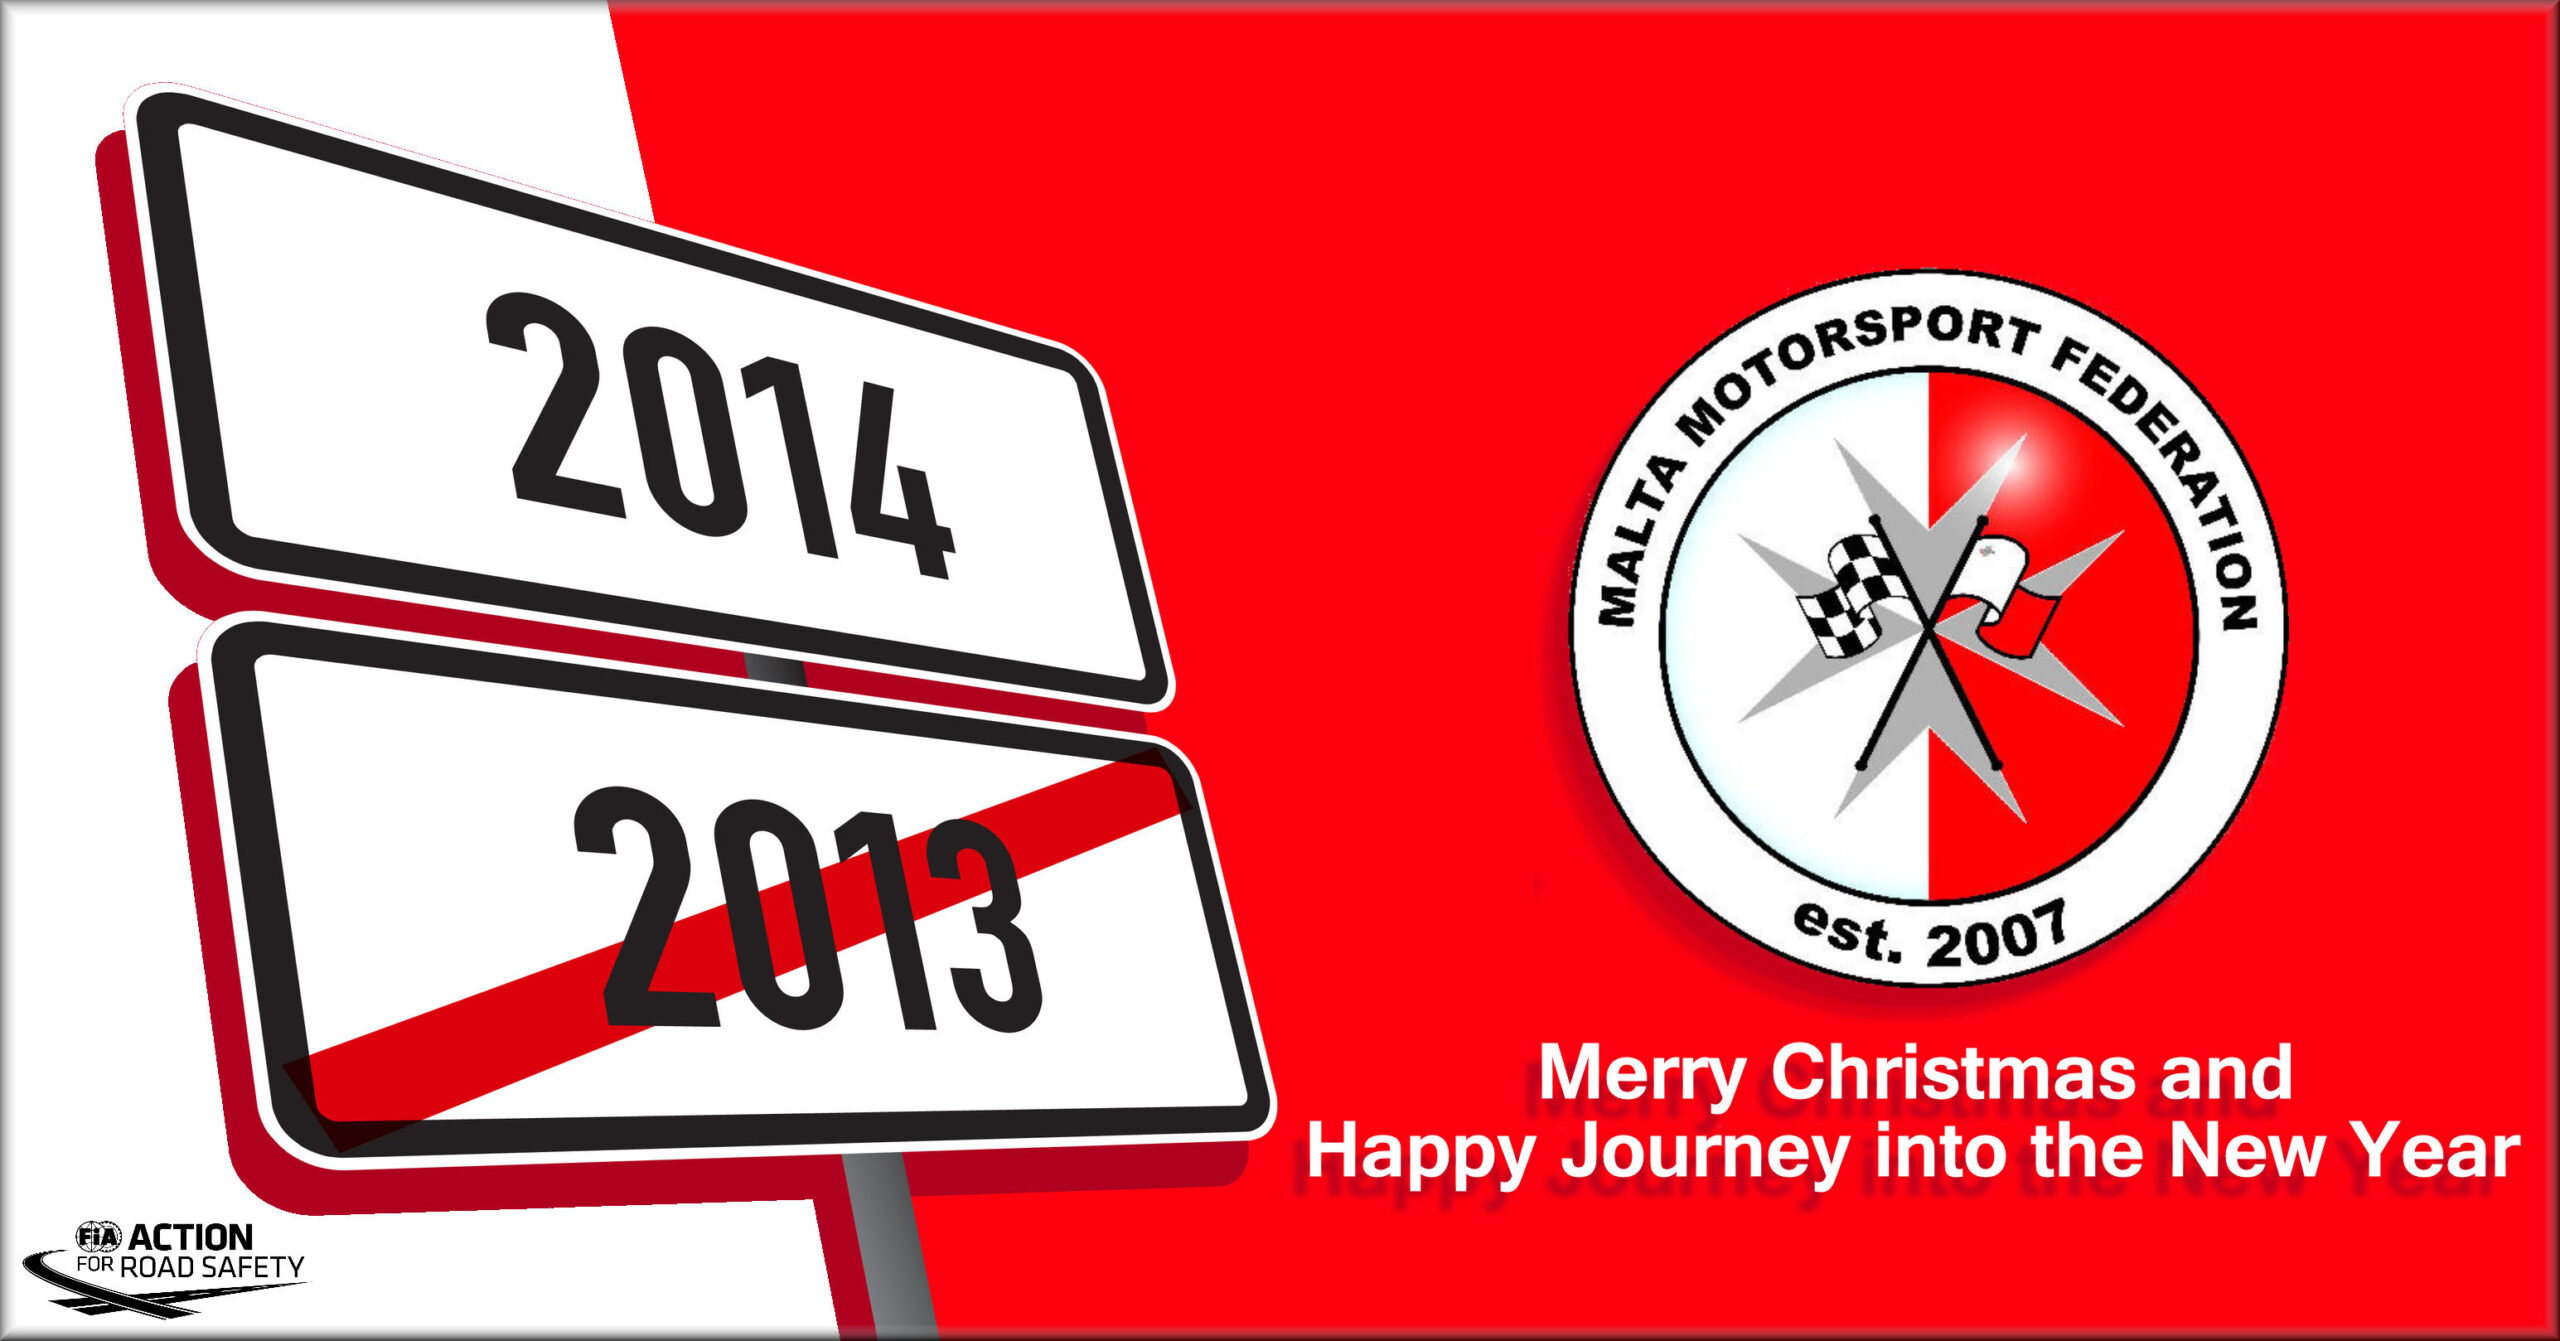 Happy Holidays from the team at MMF